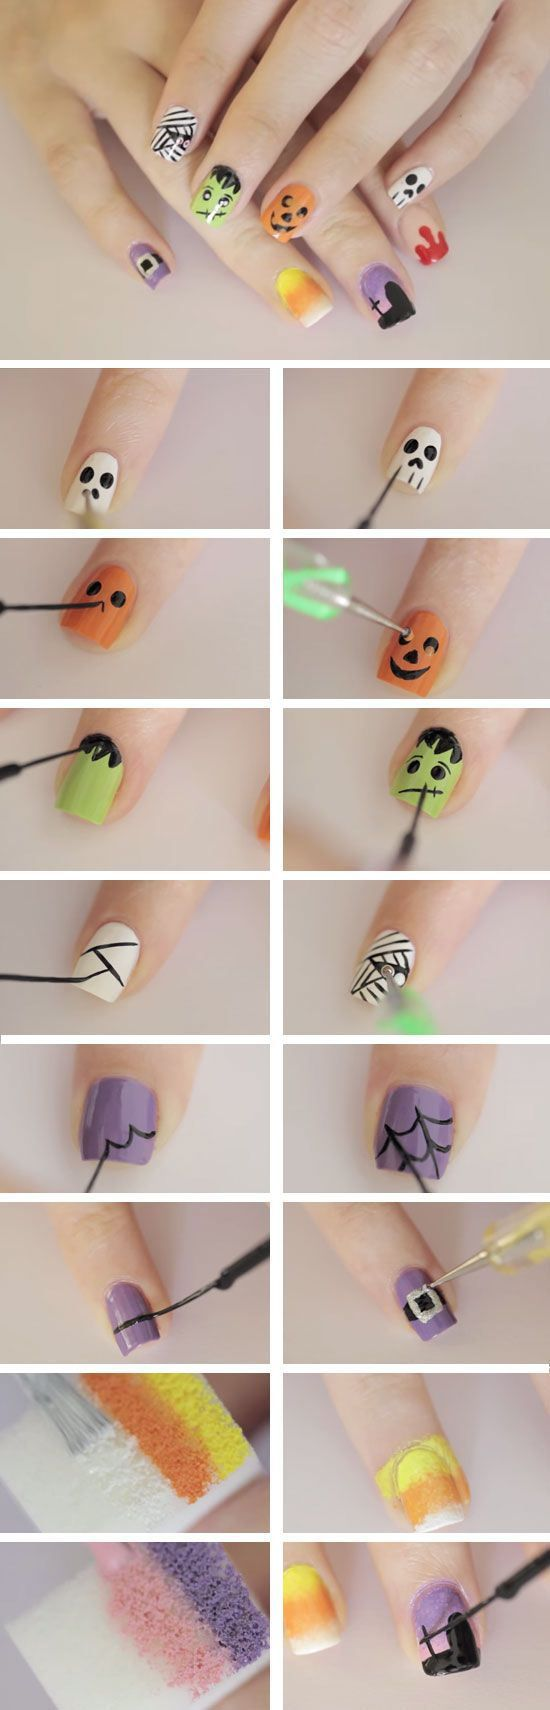 18 best S.B.S Nails Art images on Pinterest | Nail scissors, Nail ...